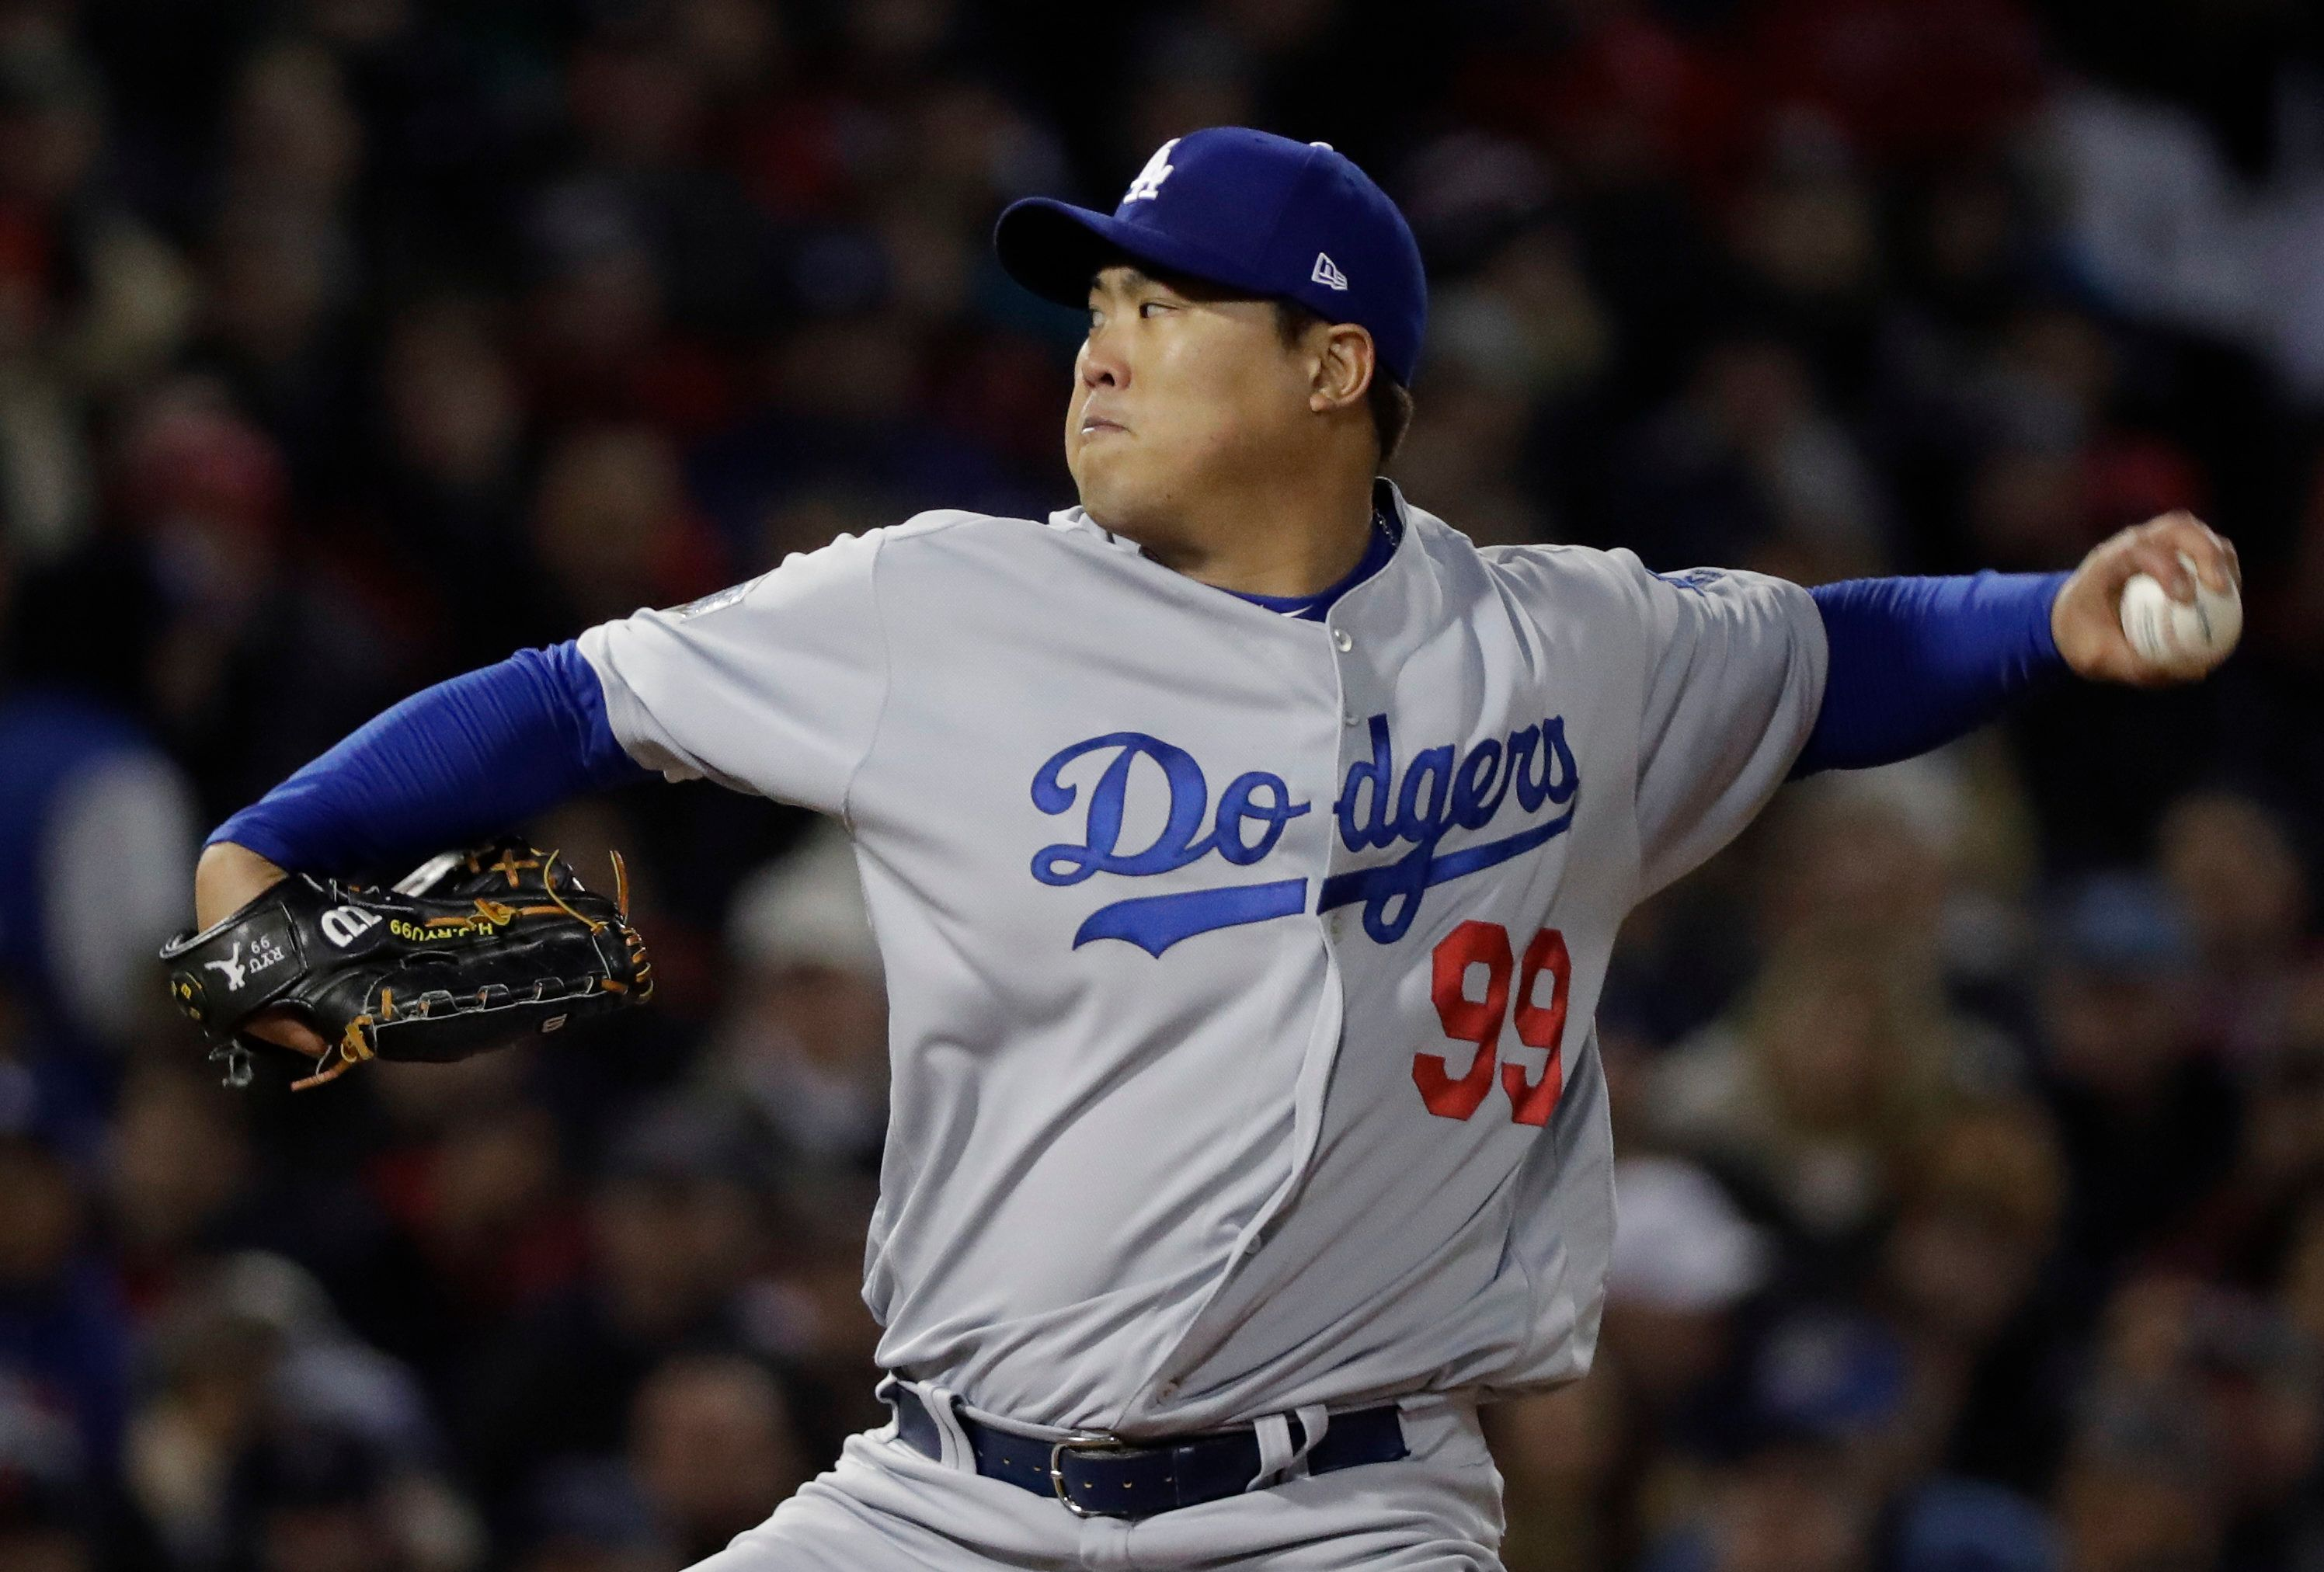 Dodgers go back to Rich Hill as Game 4 starter